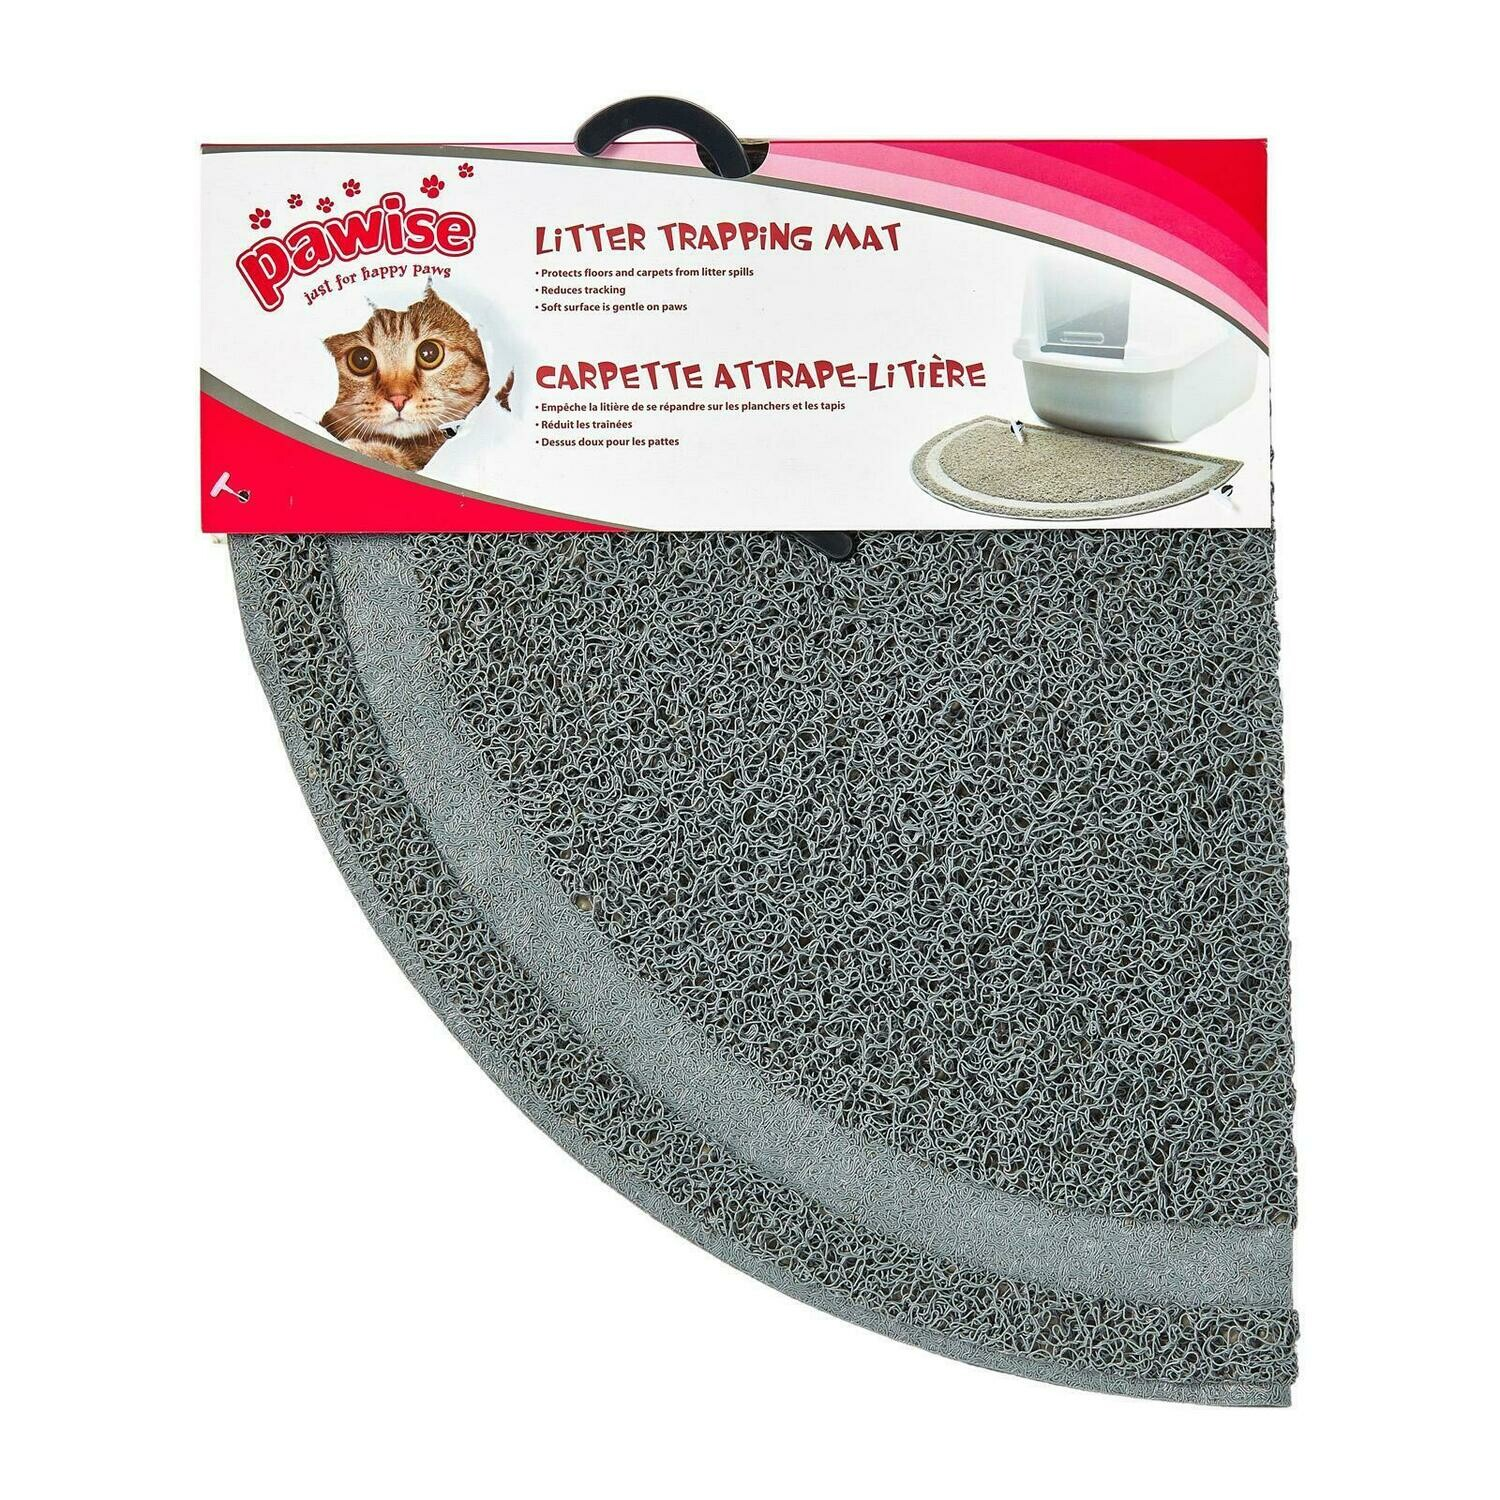 PAWISE TRAPPING LITTER MAT.